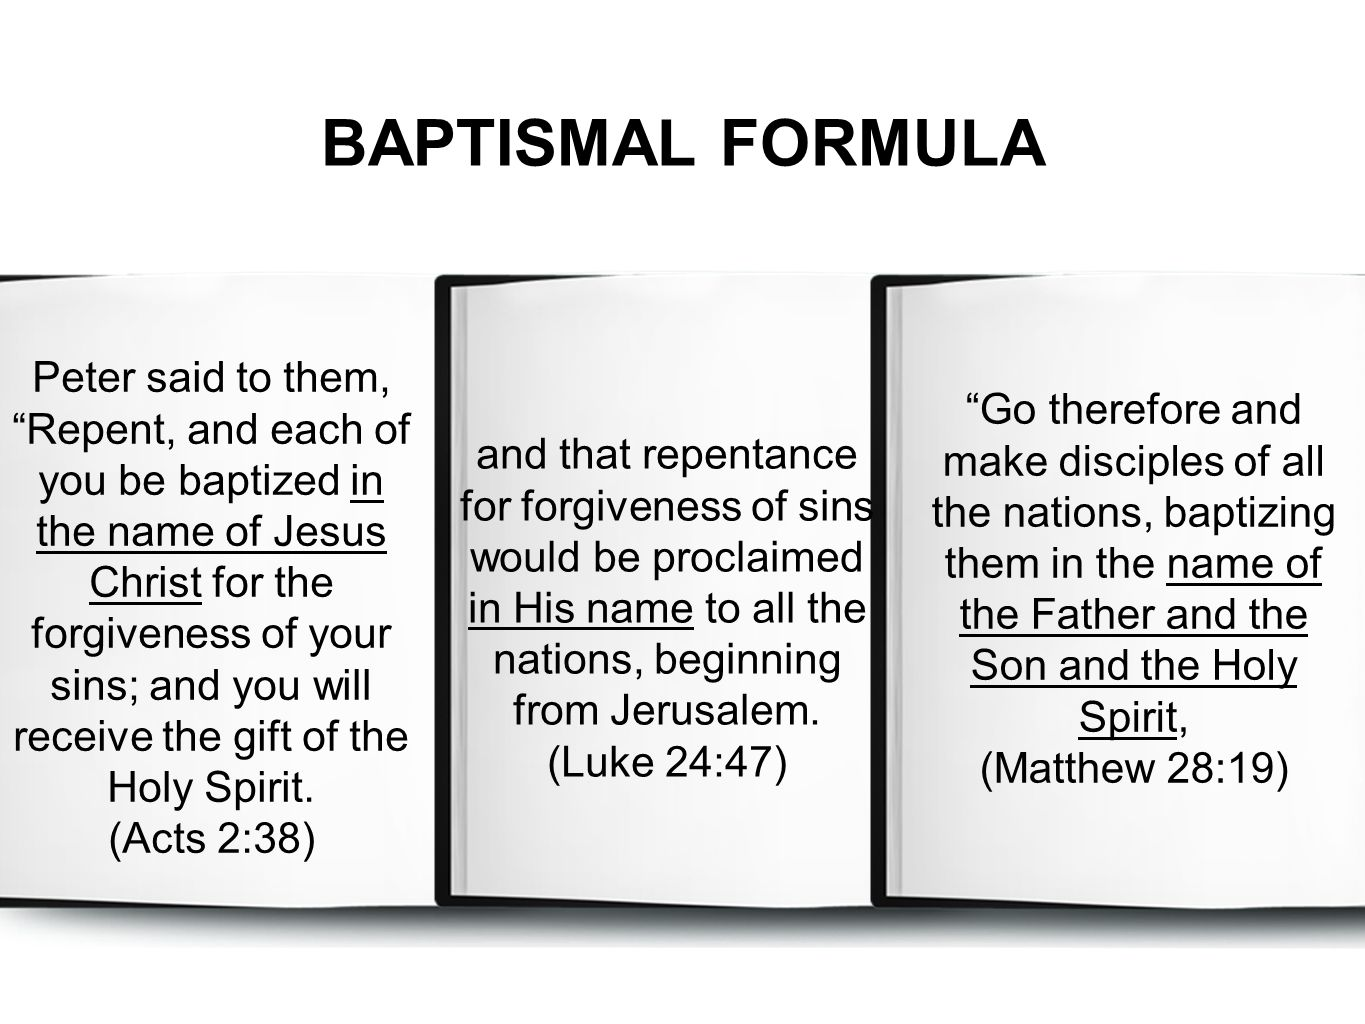 BAPTISMAL FORMULA Go therefore and make disciples of all the nations, baptizing them in the name of the Father and the Son and the Holy Spirit, (Matthew 28:19) and that repentance for forgiveness of sins would be proclaimed in His name to all the nations, beginning from Jerusalem.